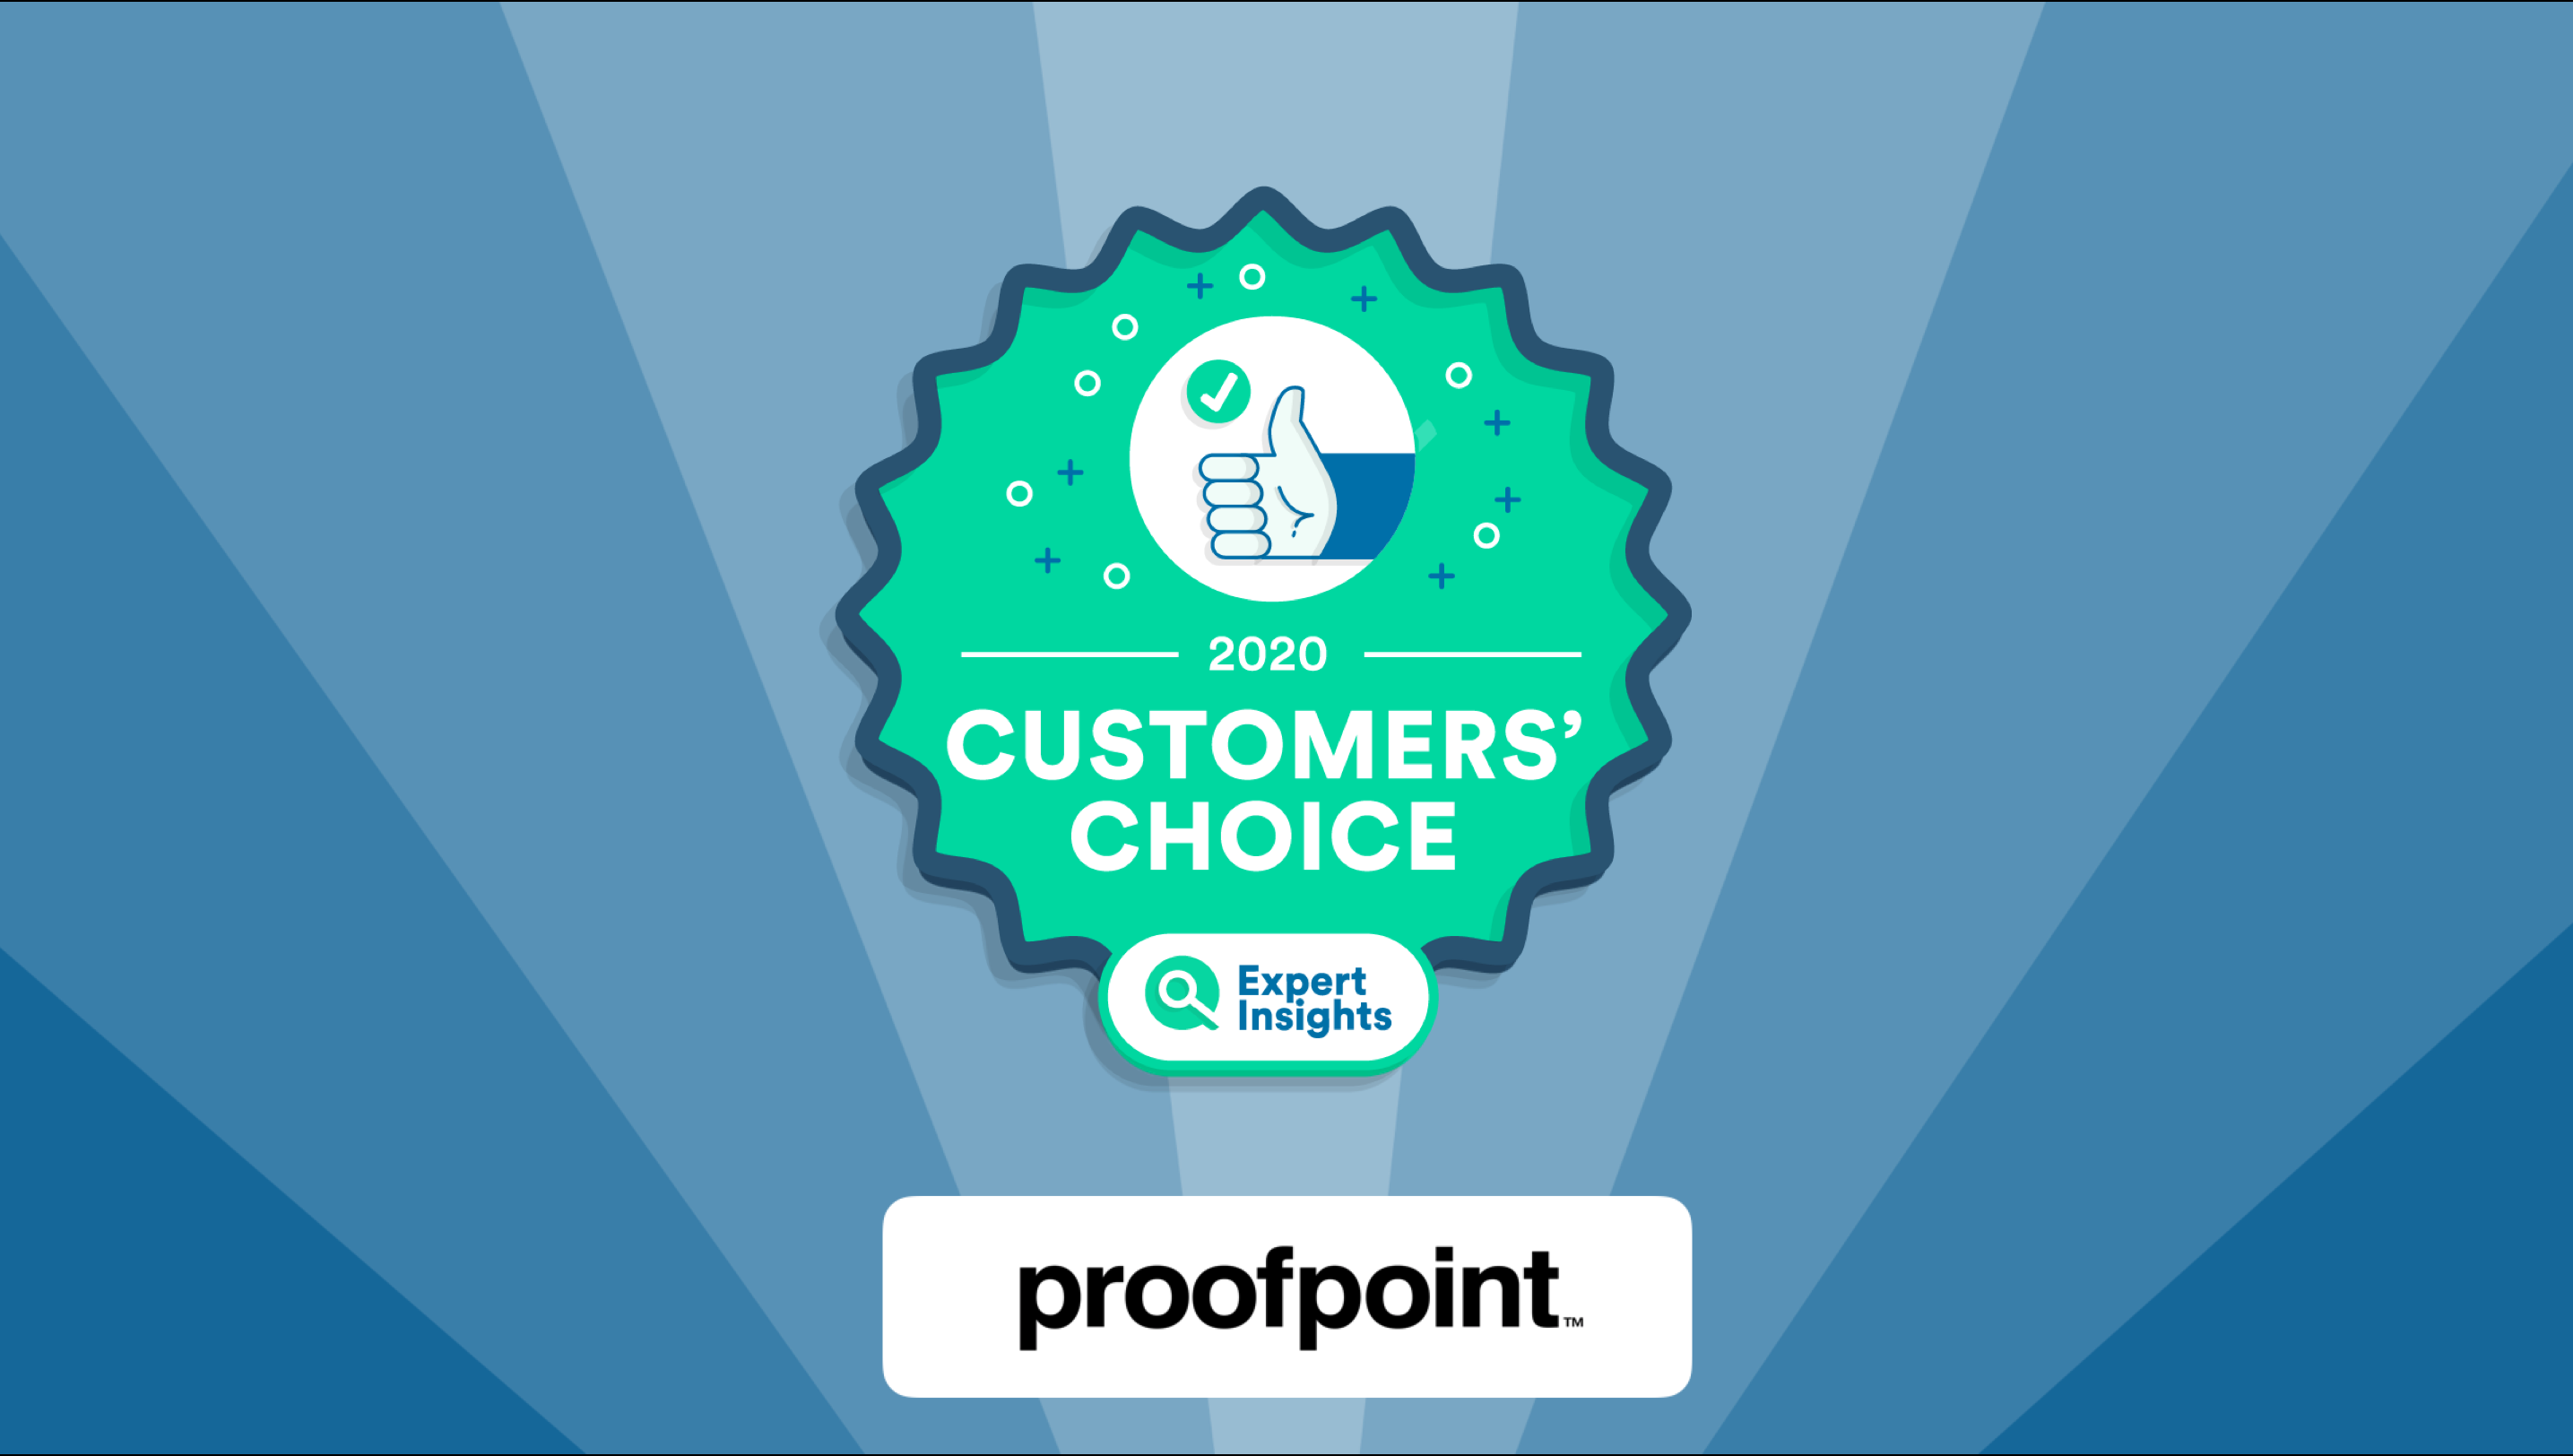 Proofpoint customers choice